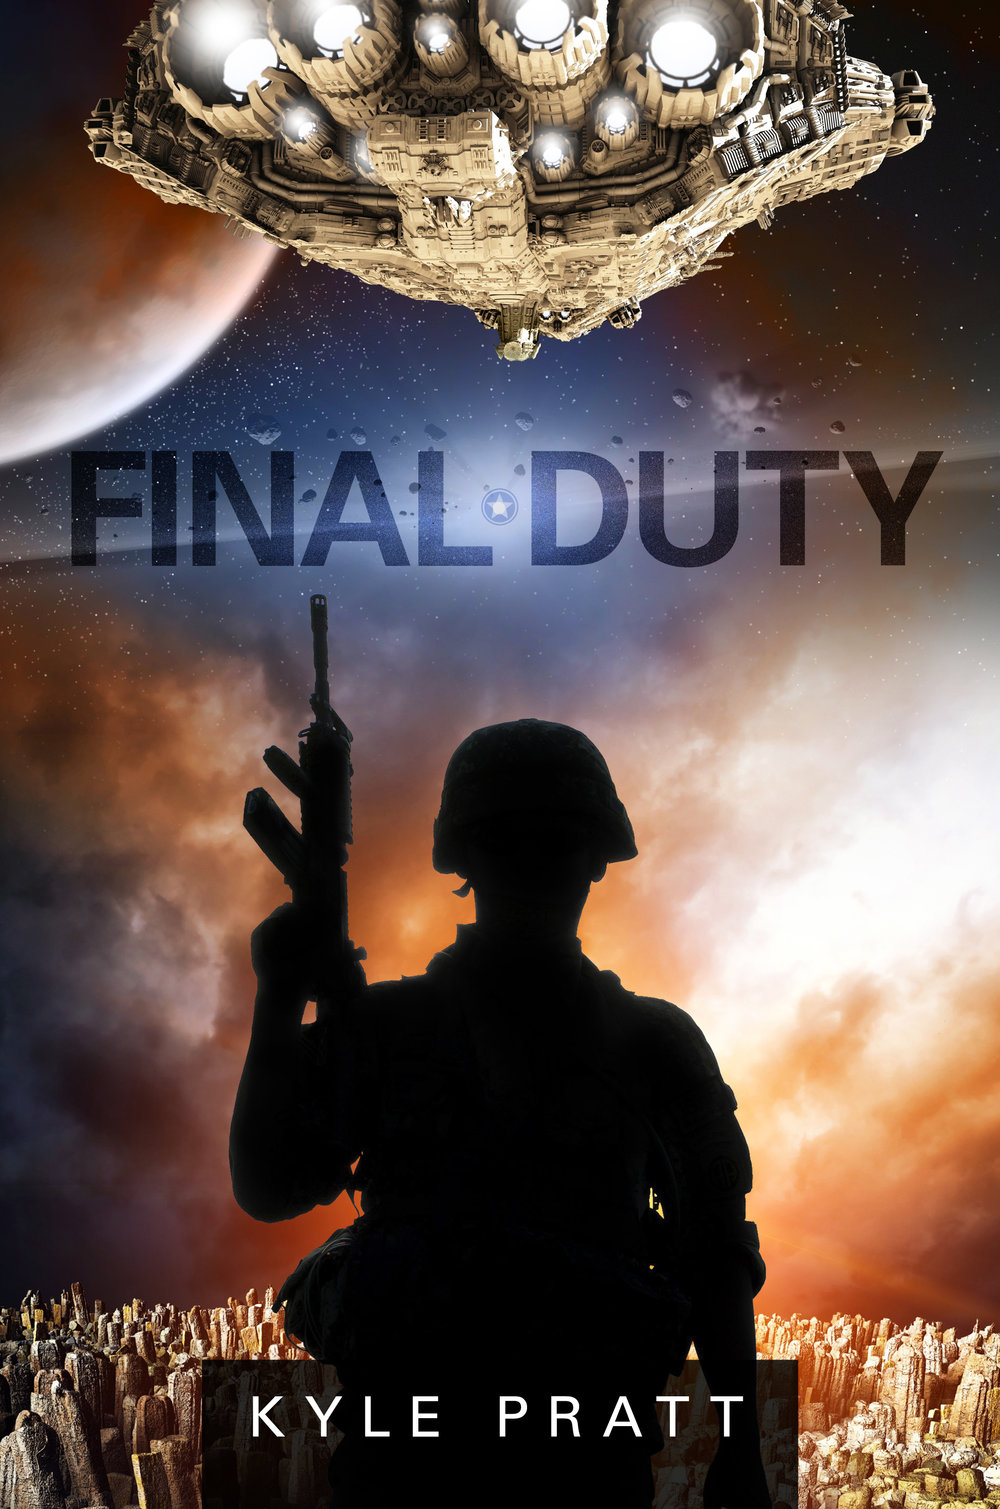 Final Duty   Twenty years after the death of her father during the Battle of Altair, Lieutenant Amy Palmer returns to the system as an officer aboard the reconnaissance ship Mirage. Almost immediately disaster strikes and Amy, along with the crew of the Mirage, must face the possibility of performing their final duties.  Final Duty is a 15,000 word novelette available as an ebook, and as an audiobook with both a male and female narrator.